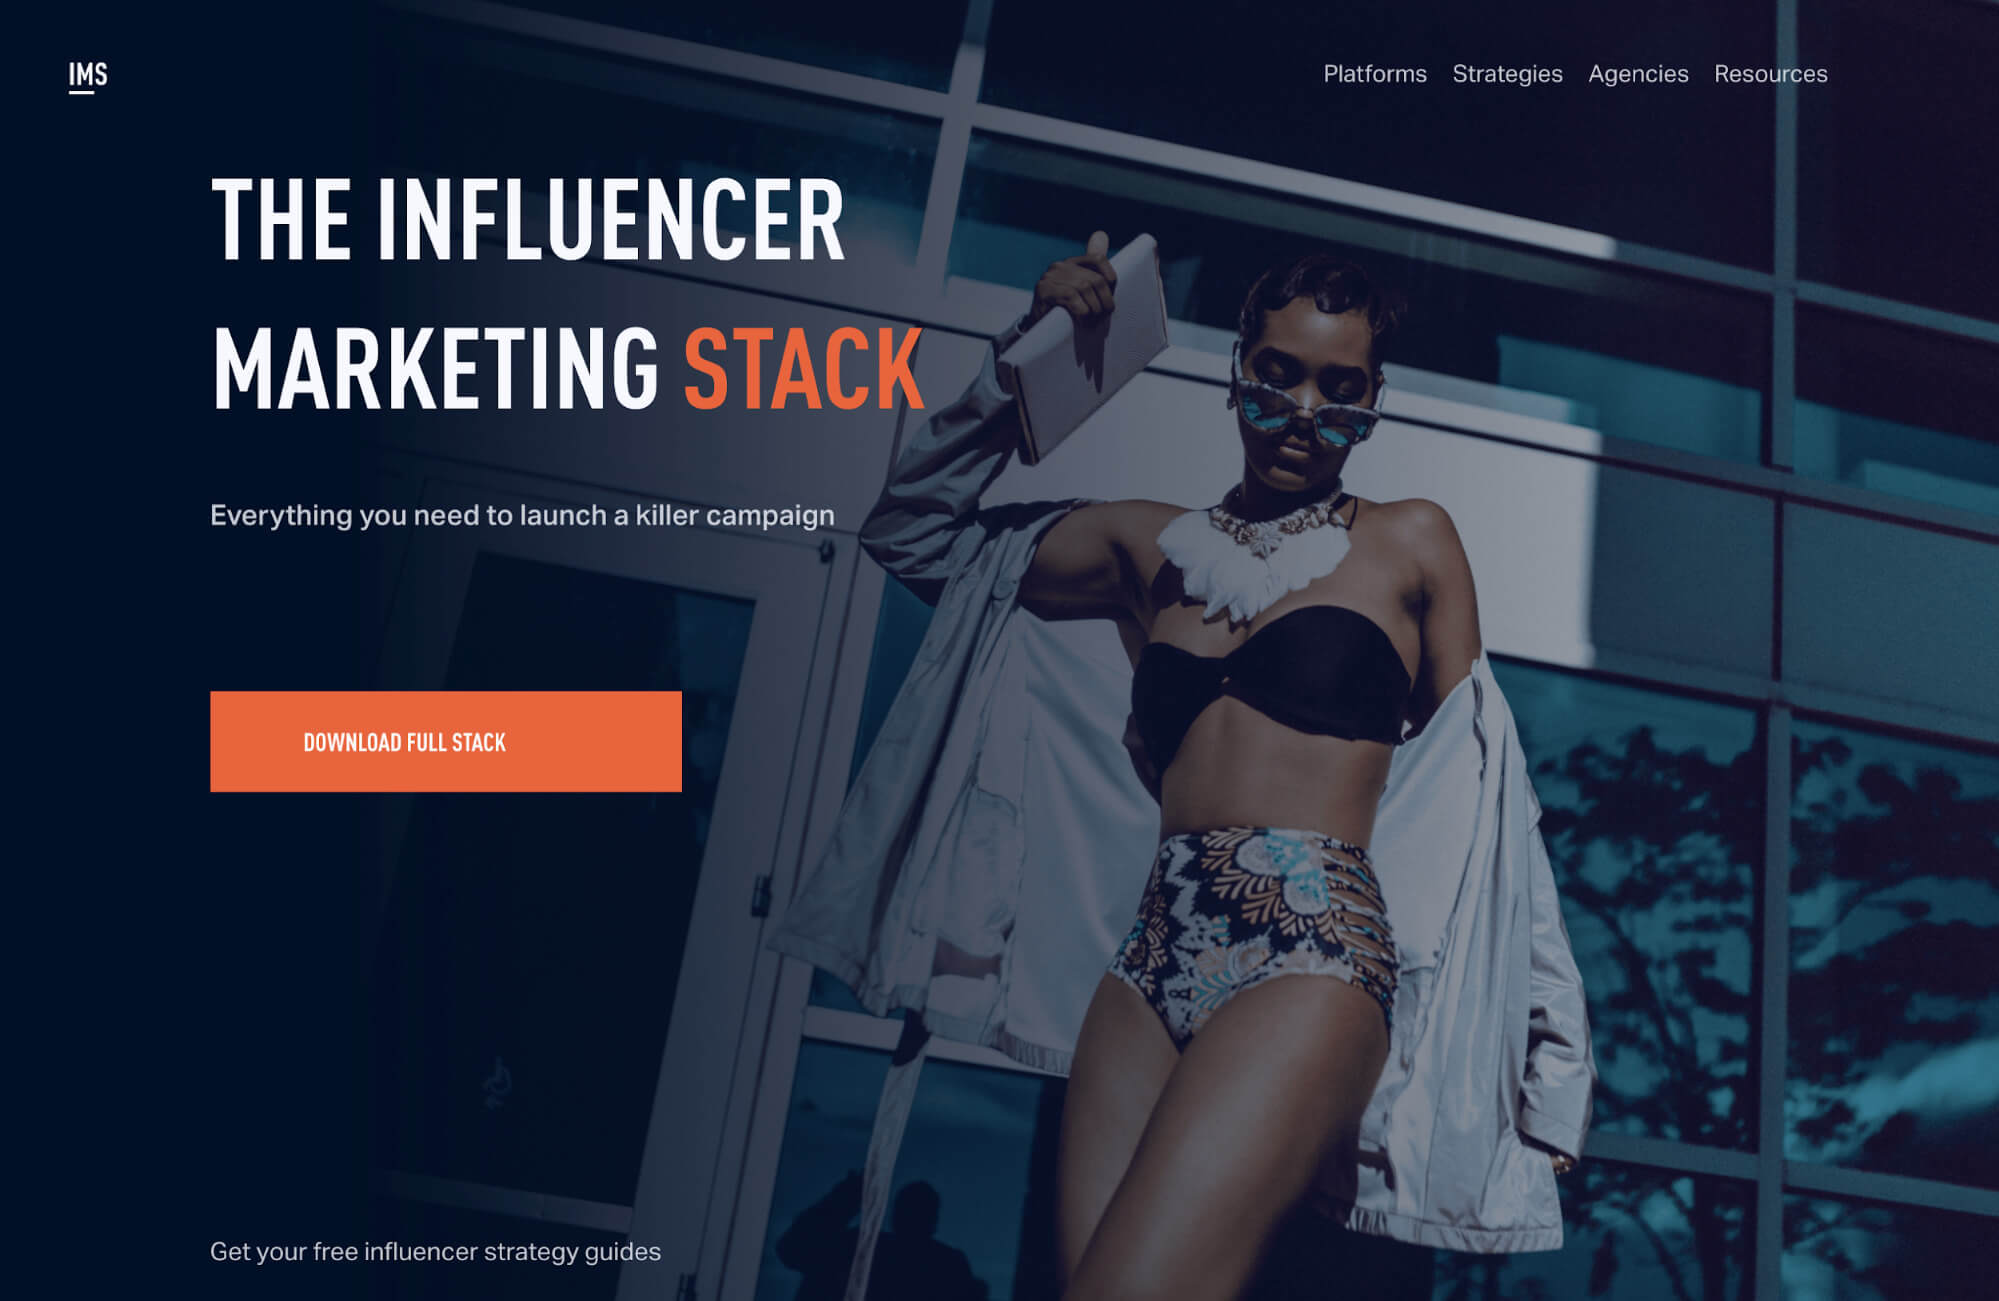 The Influencer Marketing Stack